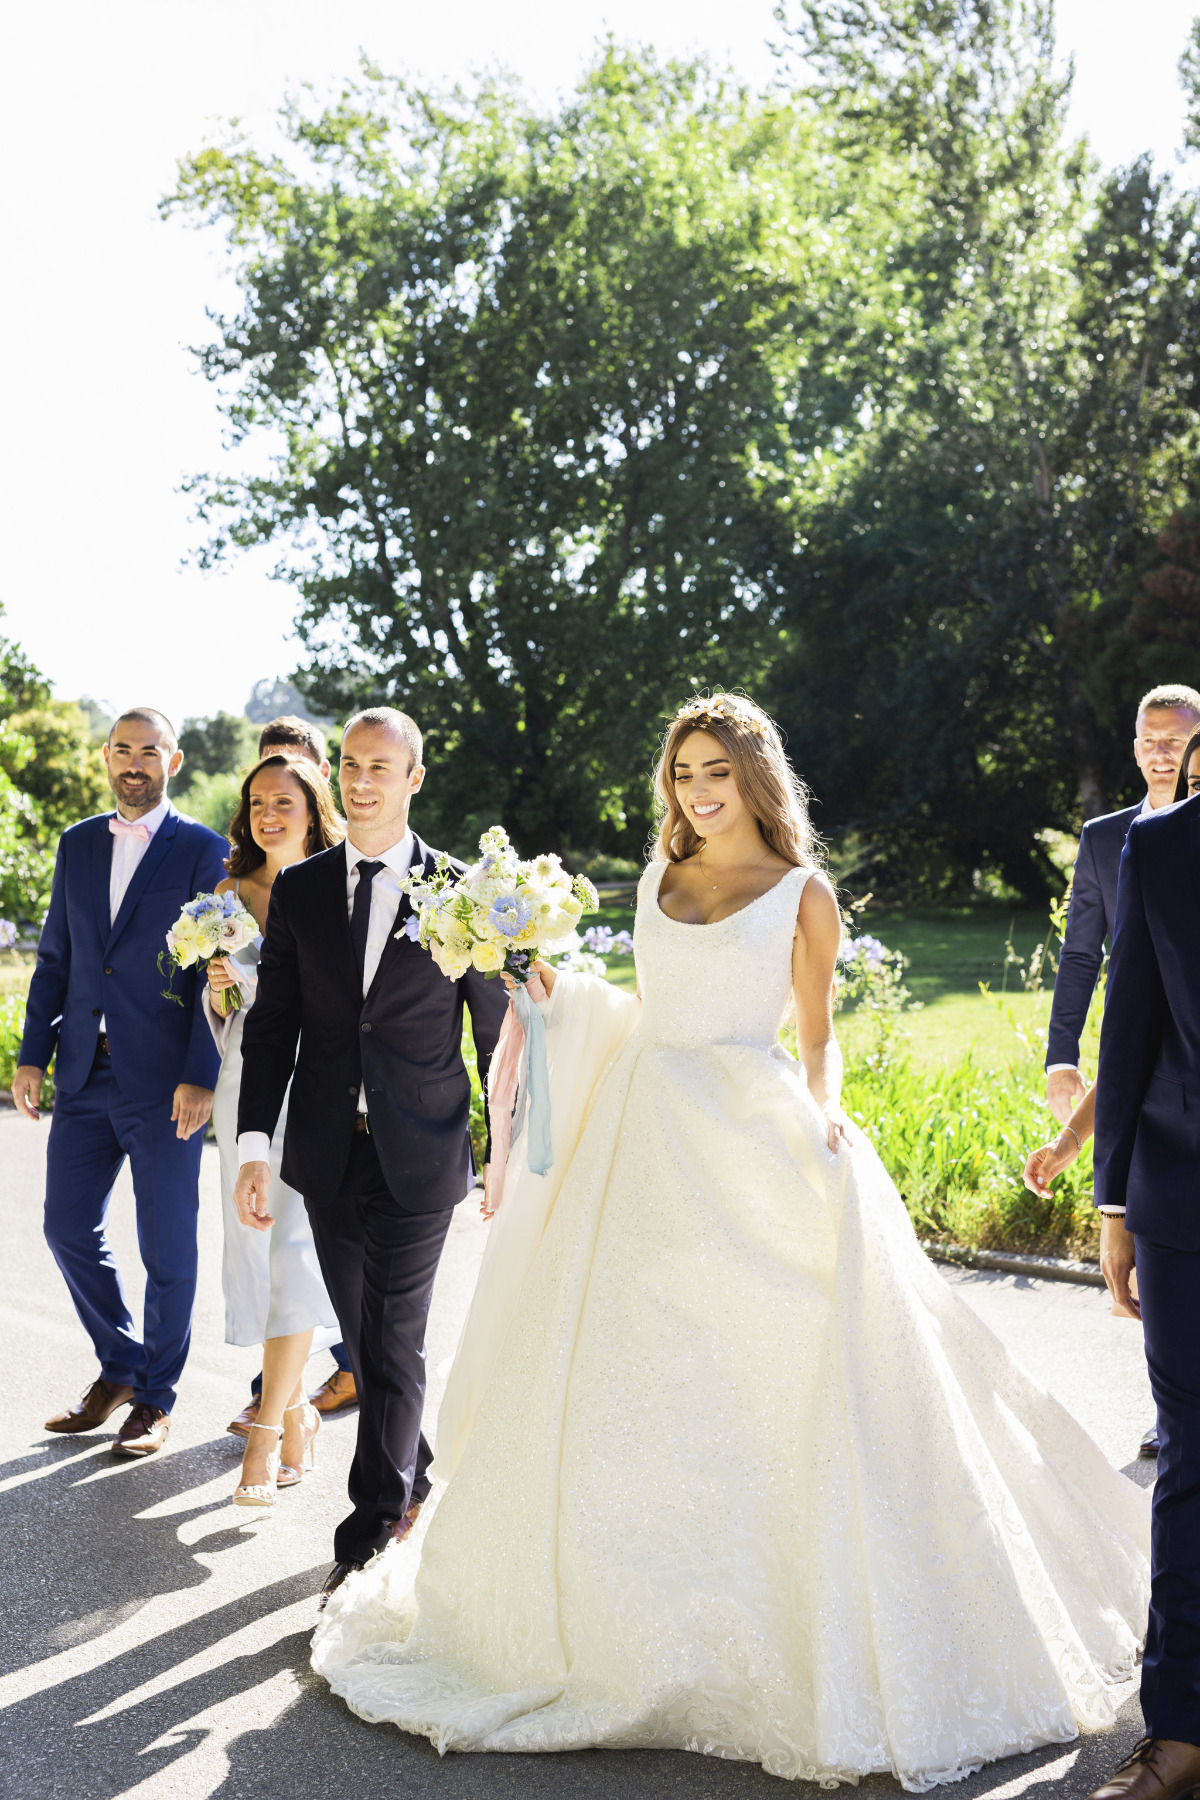 Romantic luxury wedding in Portugal